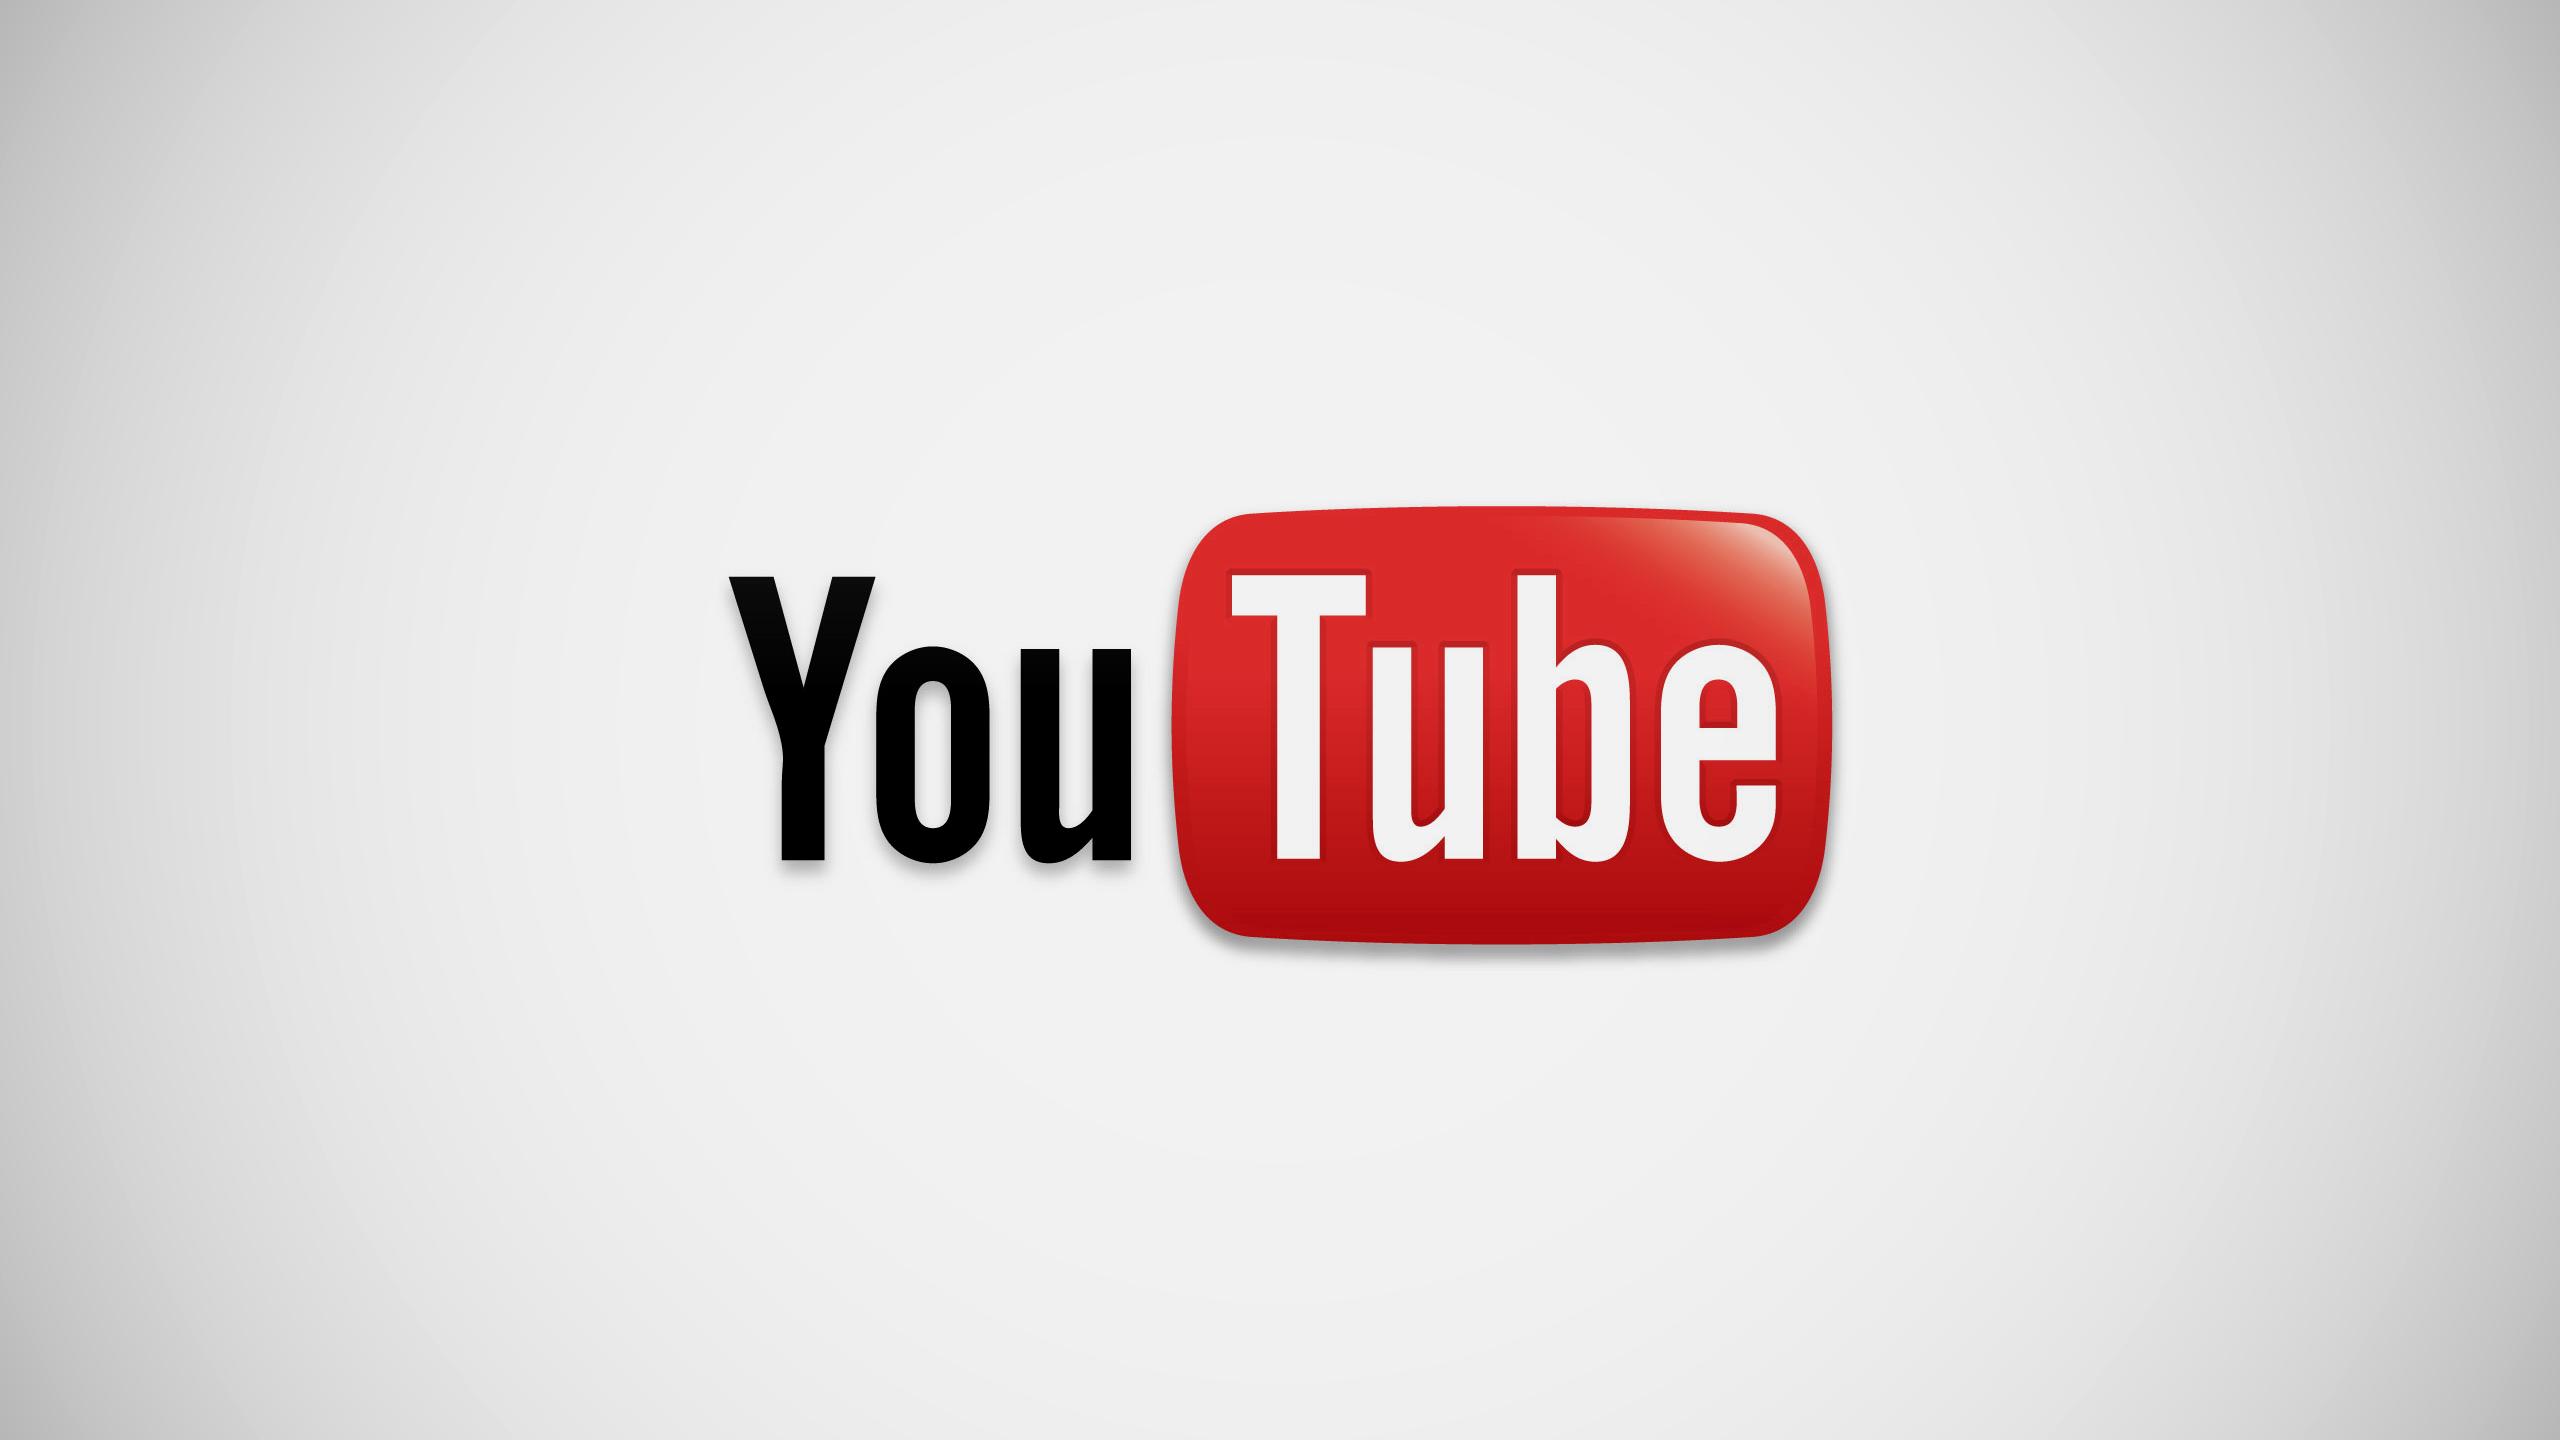 ... Content Strategy For Your YouTube Account – PART 2 | grassrootsy